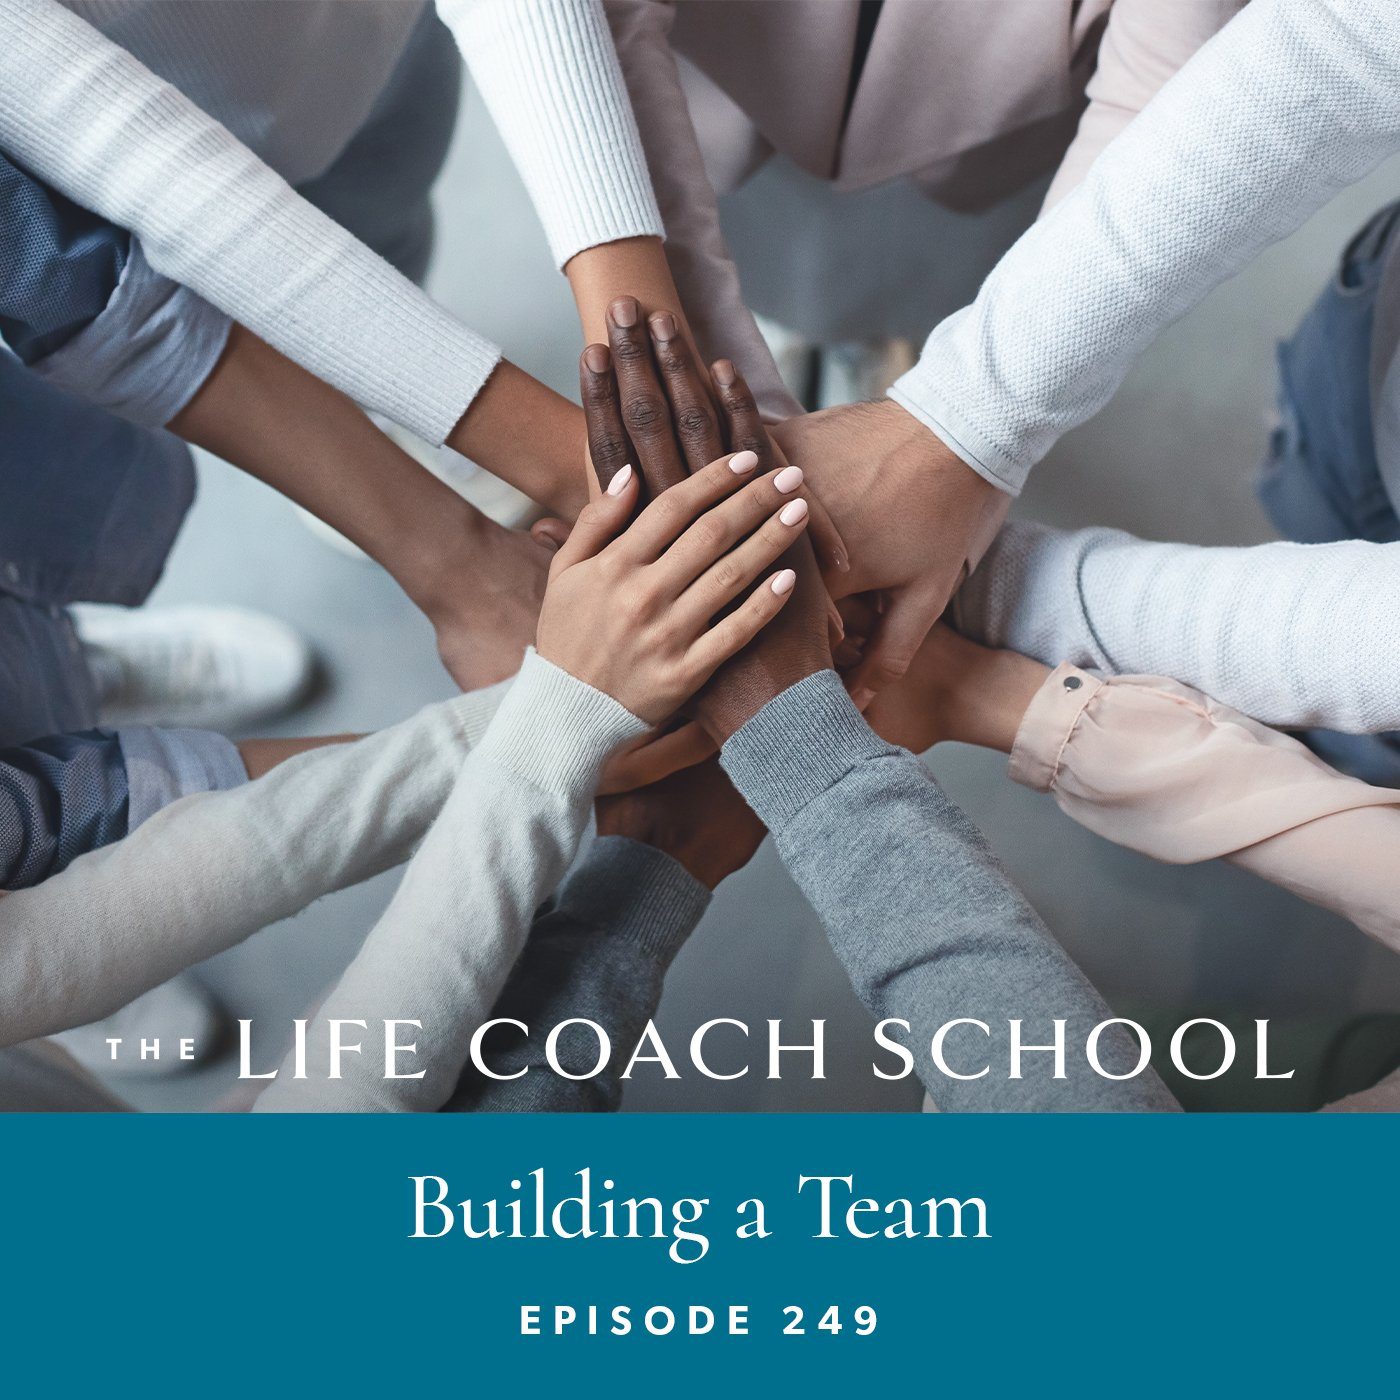 The Life Coach School Podcast with Brooke Castillo | Episode 249 | Building a Team